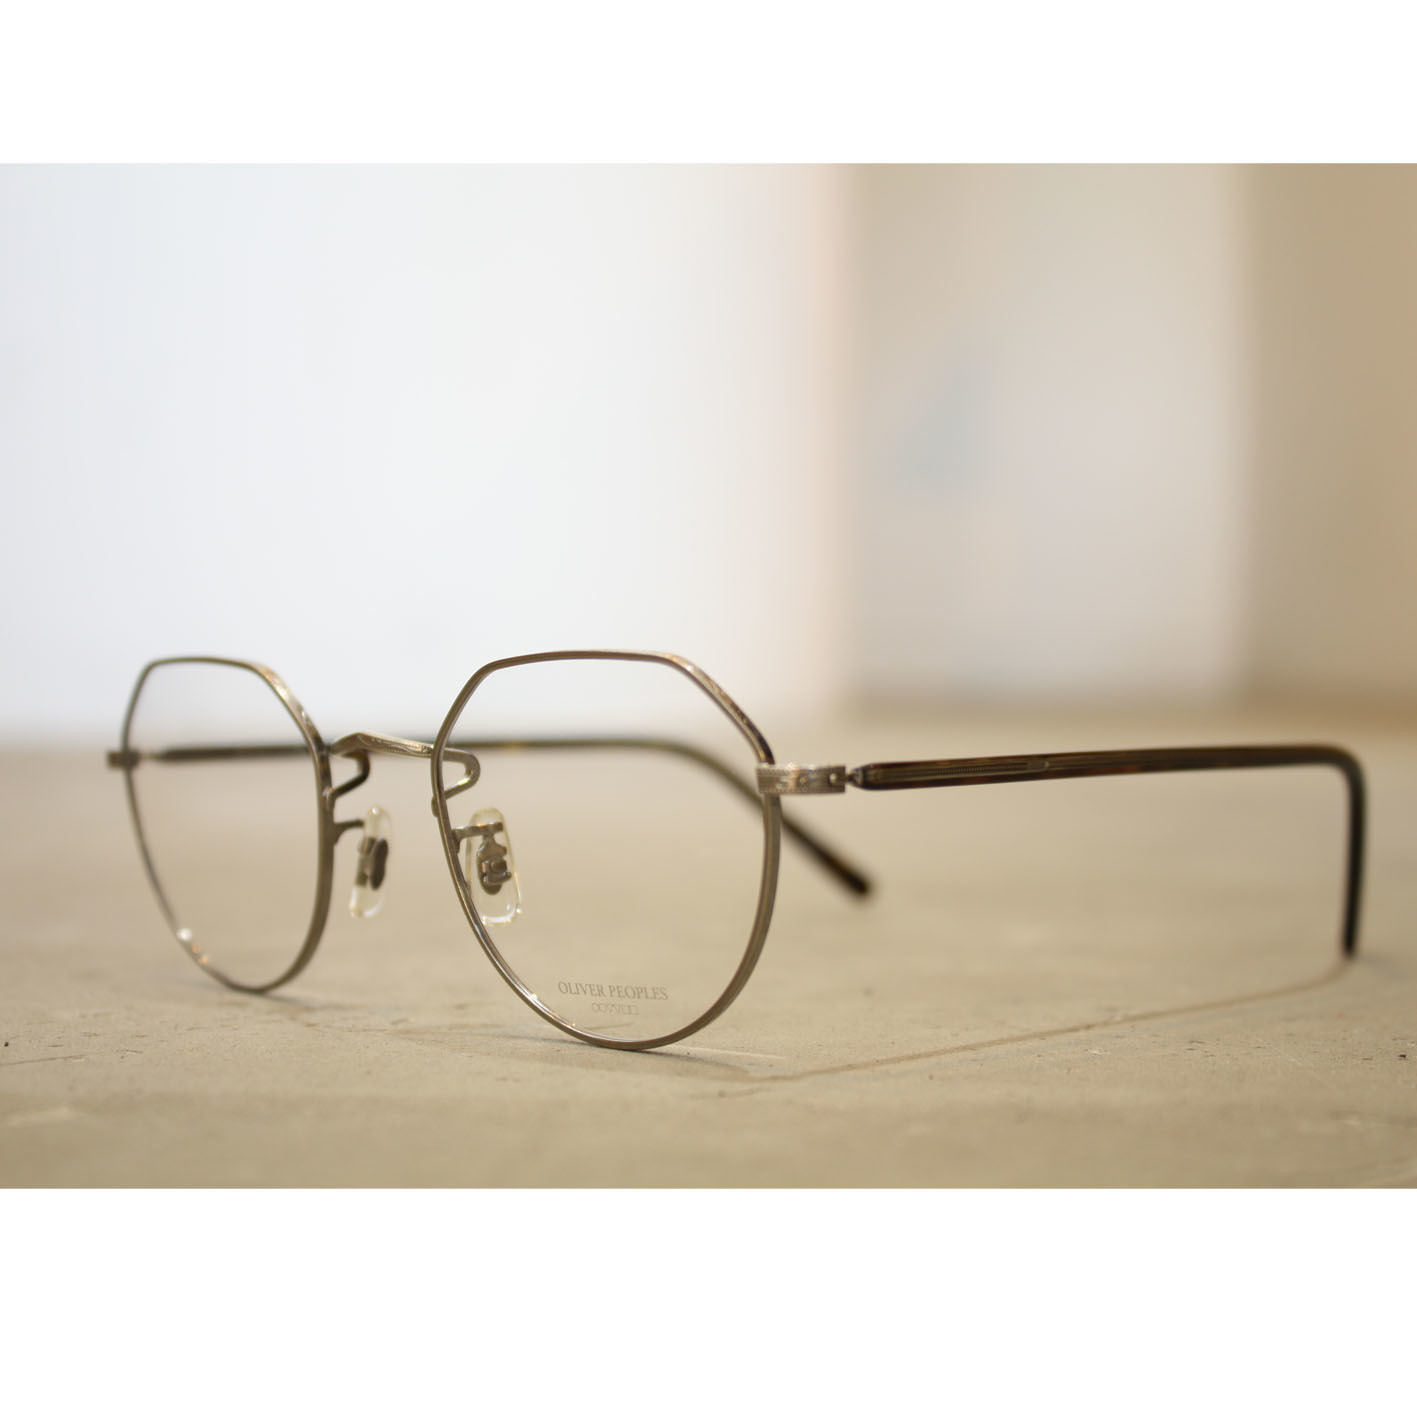 OLIVER PEOPLES 2016 NEW ARRIVAL_f0208675_18270503.jpg